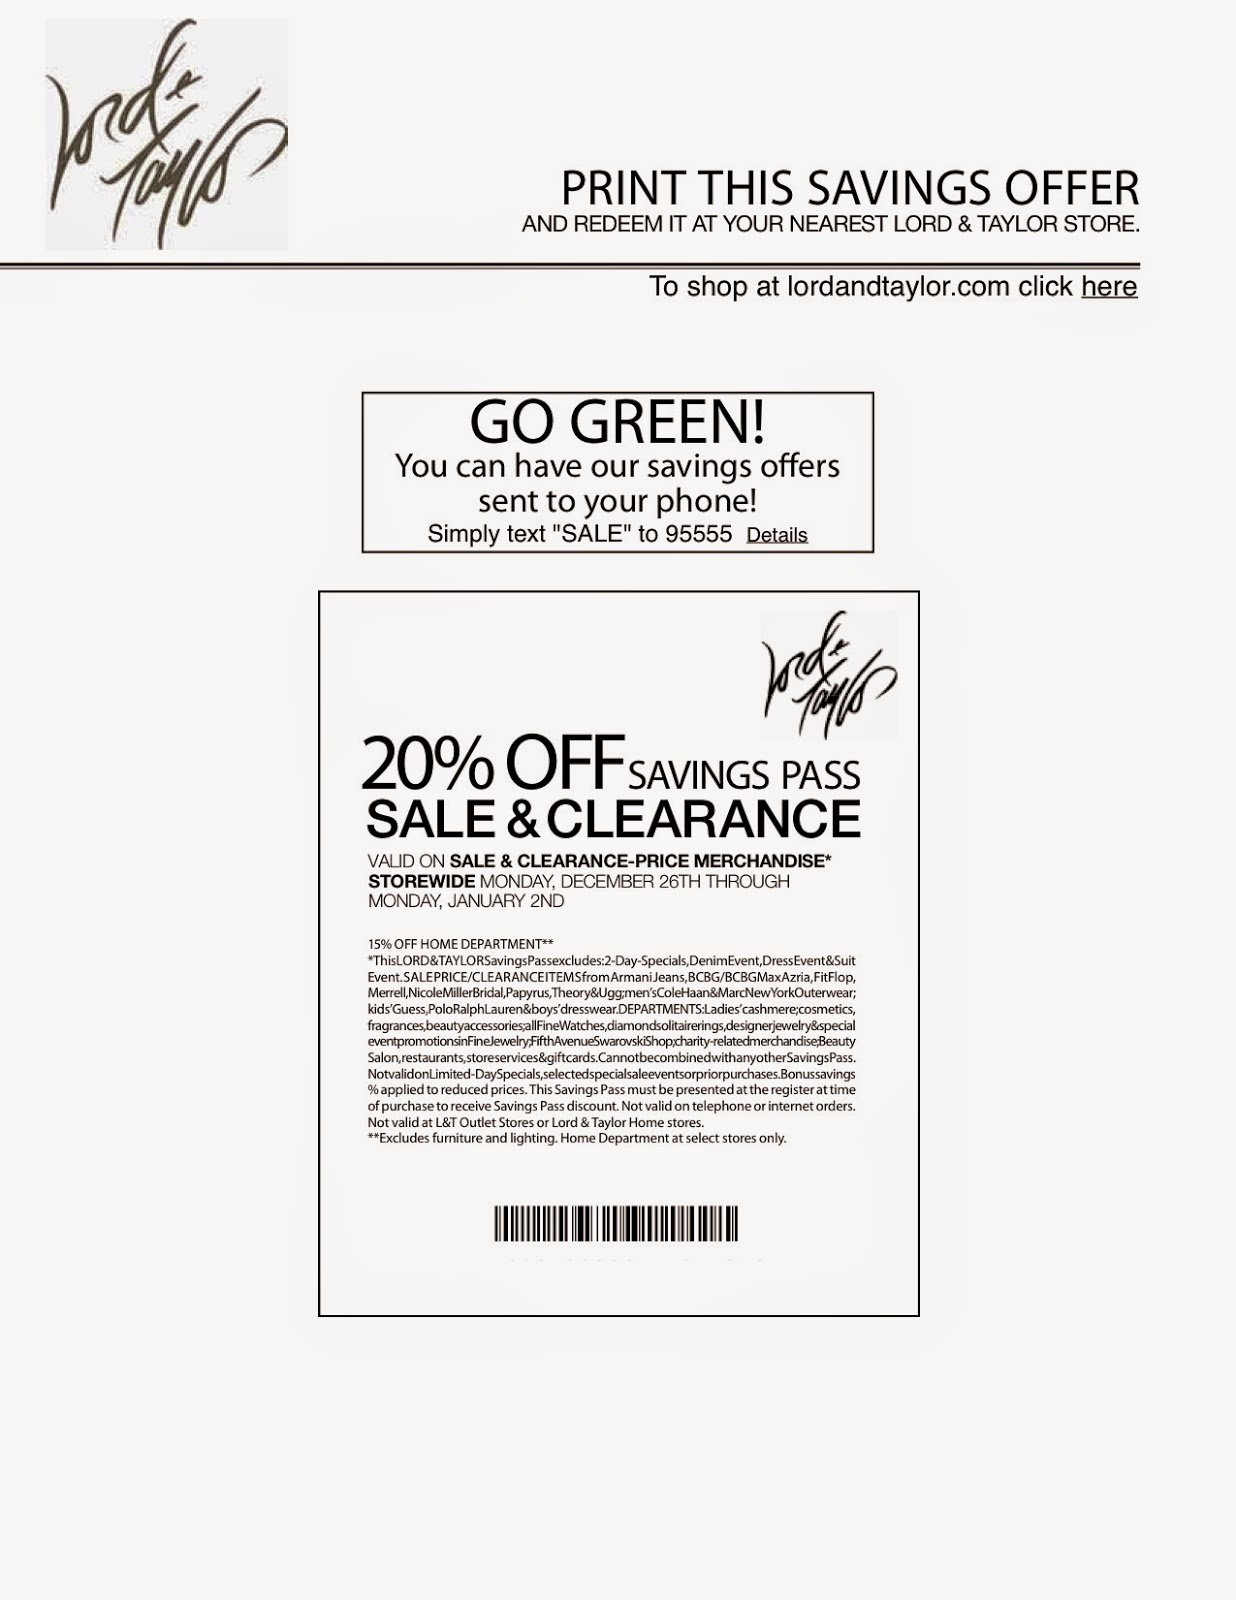 photo relating to Lord and Taylor Printable Coupon titled Lord and taylor printable coupon may possibly 2018 : Black friday